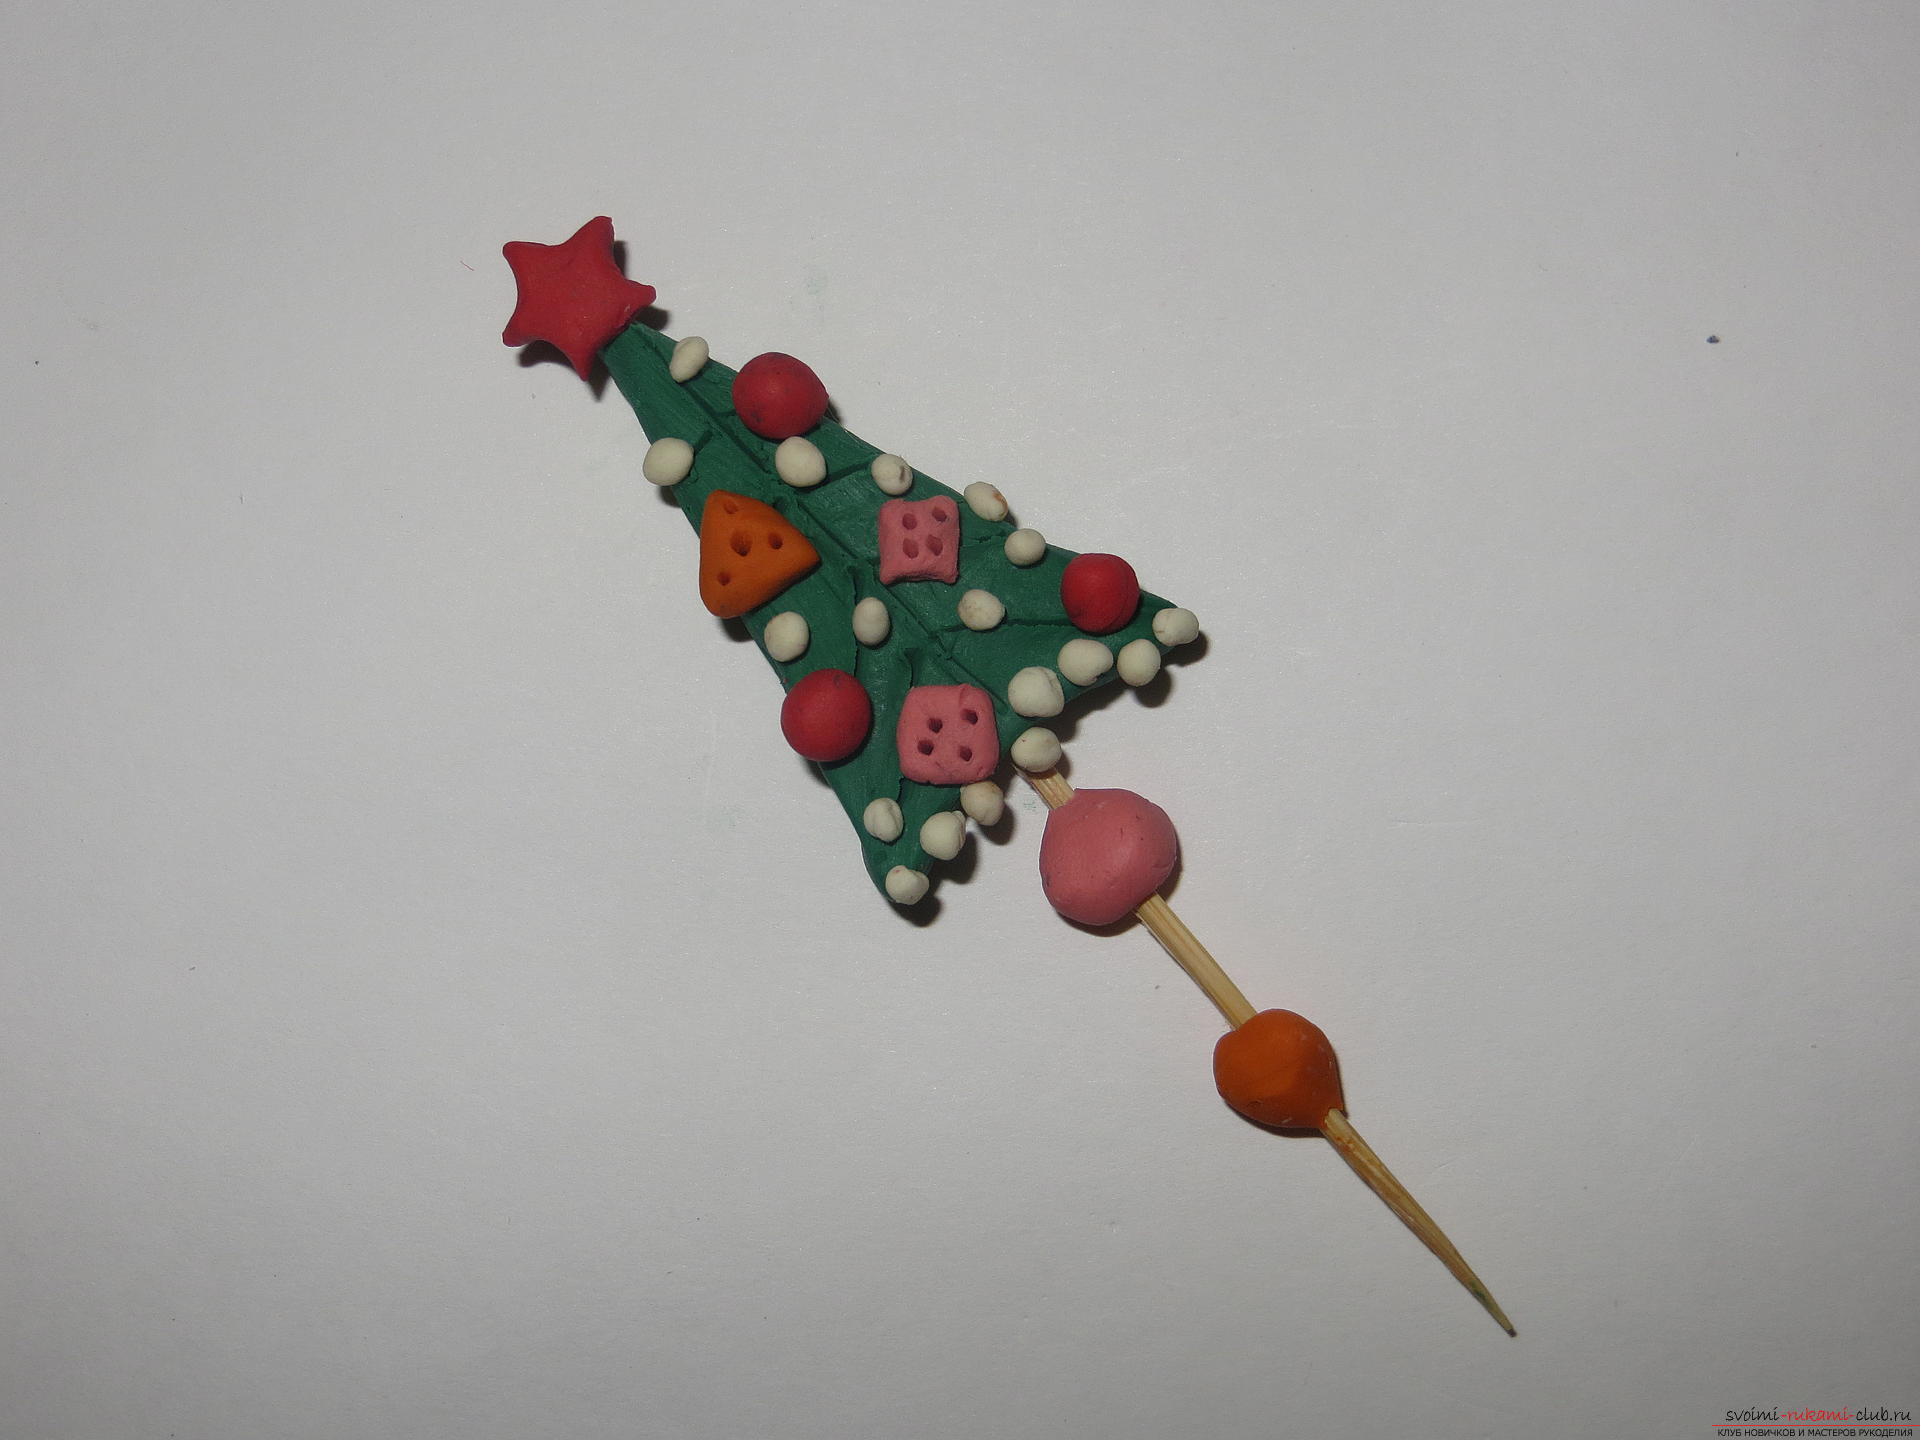 The master class will teach you how to make a New Year's craft - a Christmas tree made of plasticine on a toothpick. Photo №8